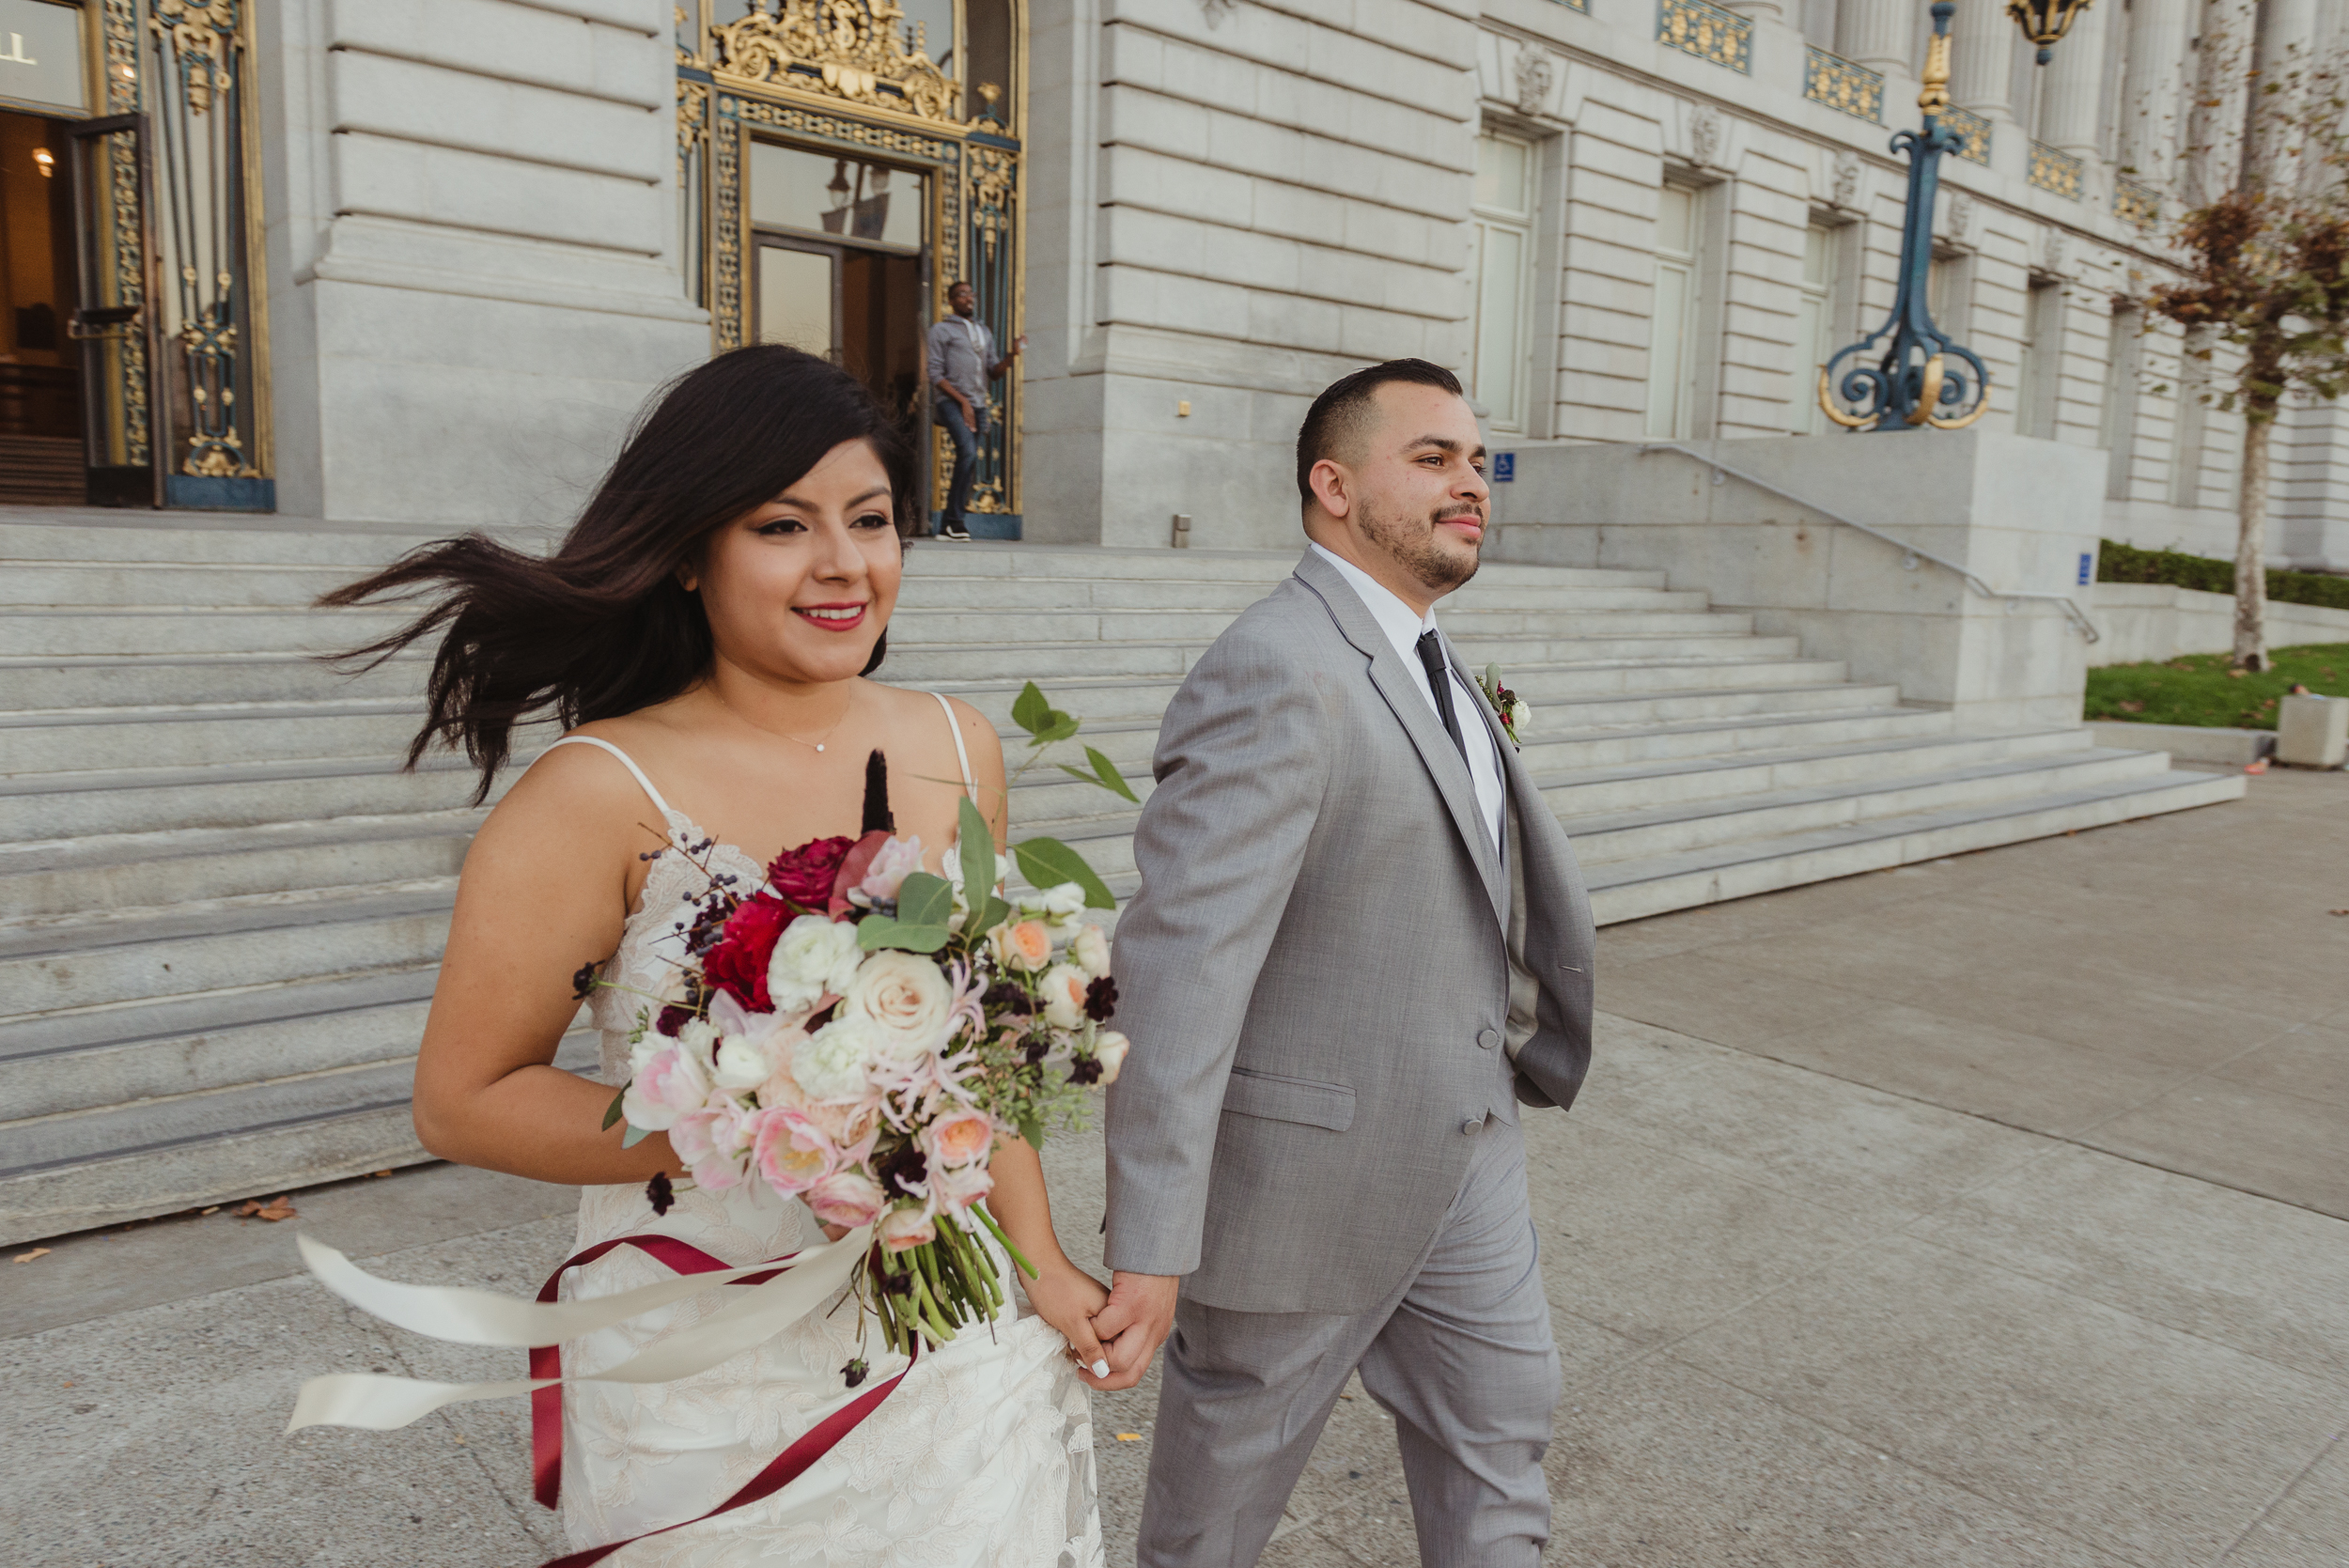 san-francisco-city-hall-wedding-vivianchen-RK23.jpg